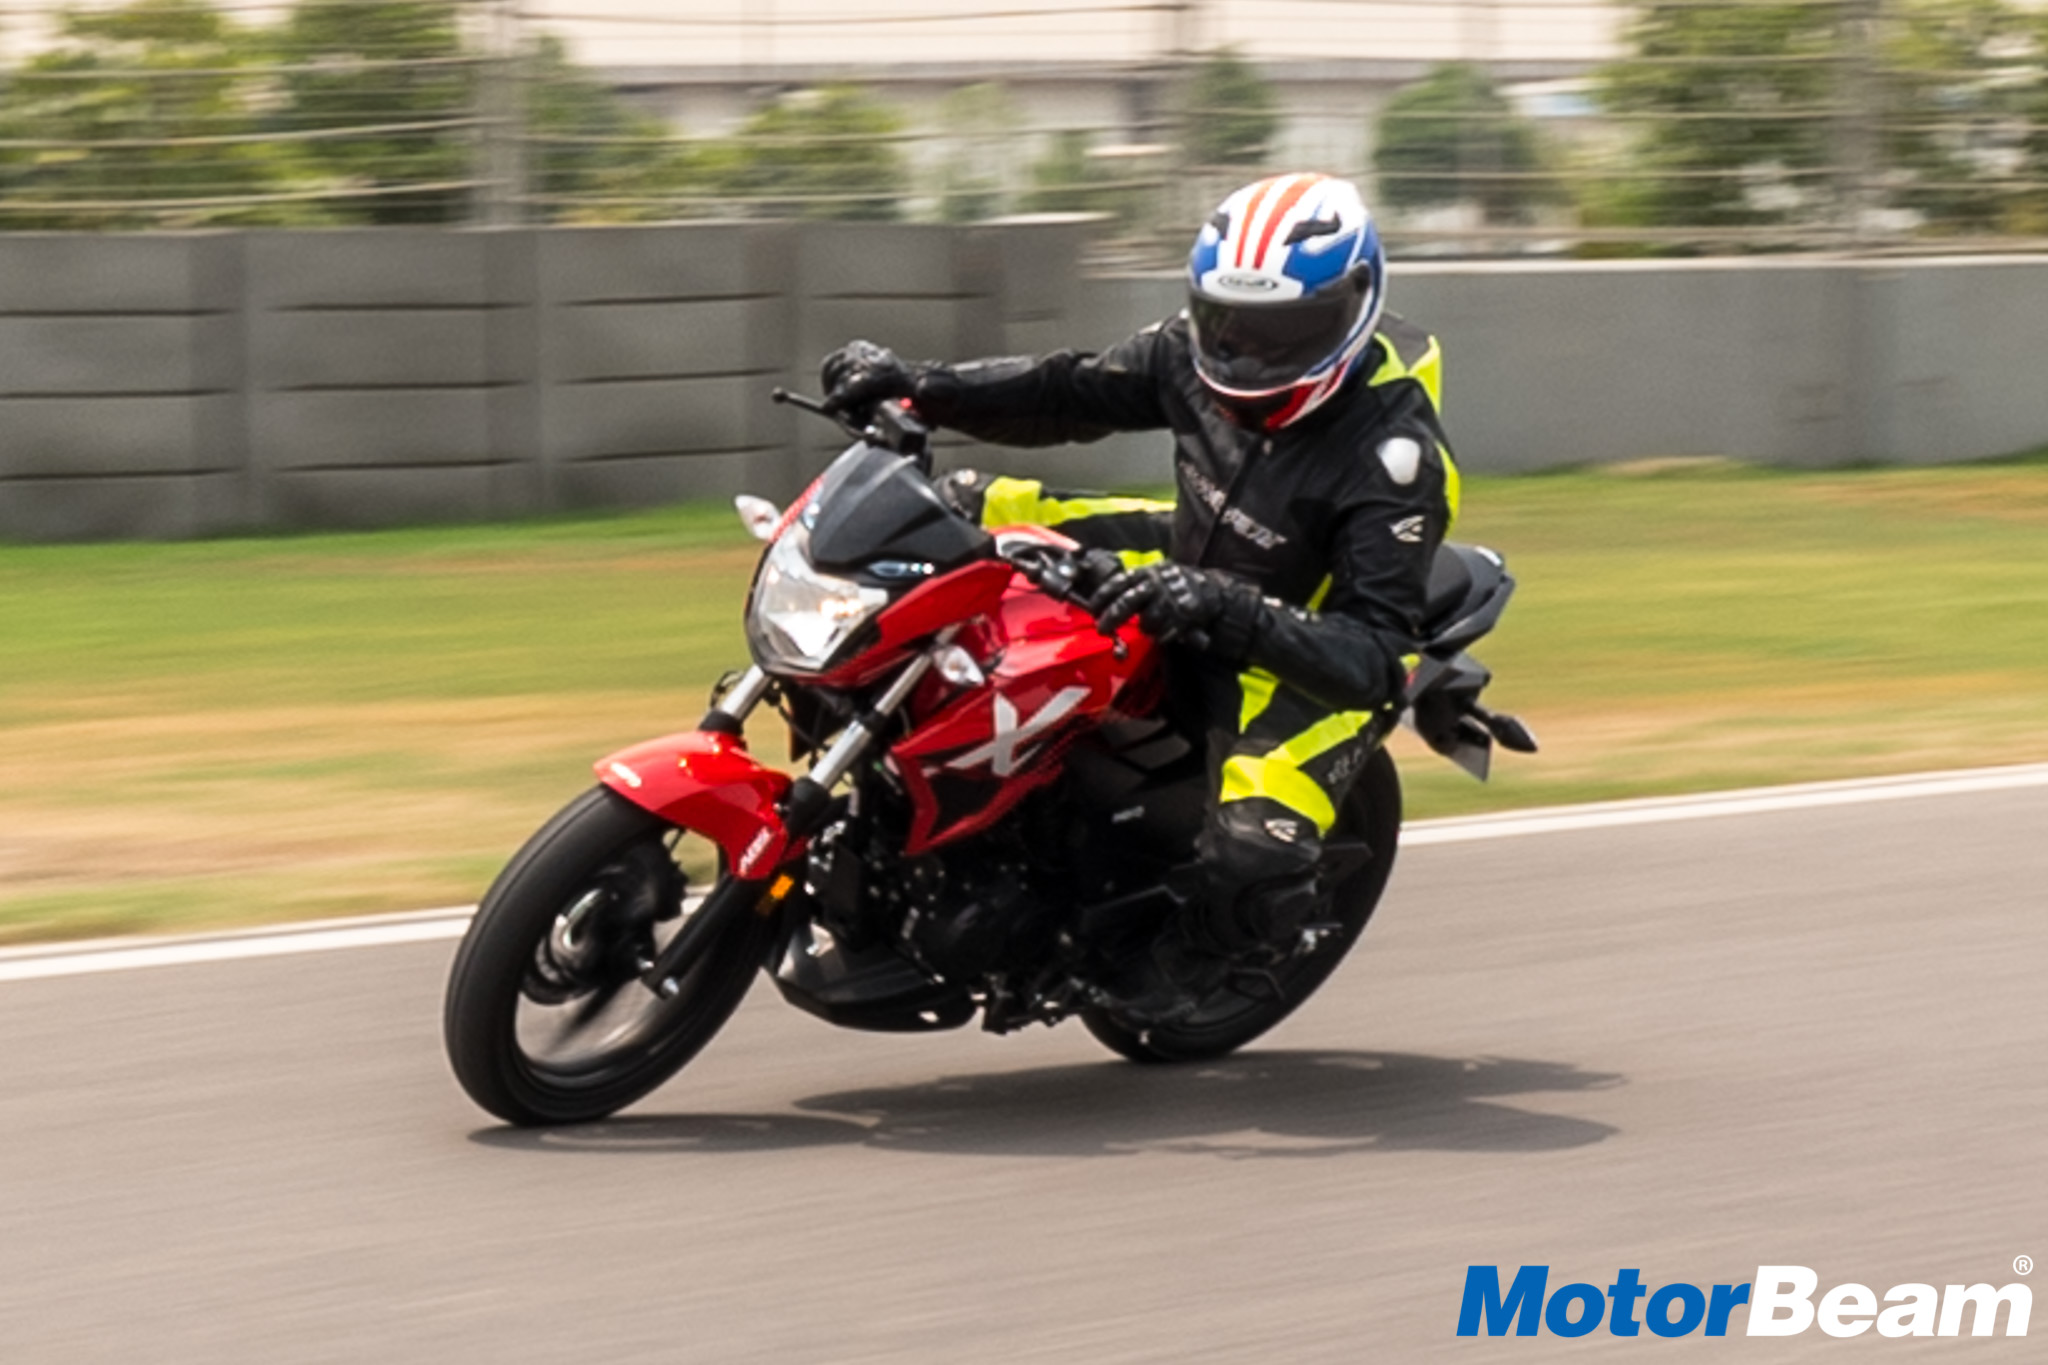 Hero Xtreme 200R Video Review